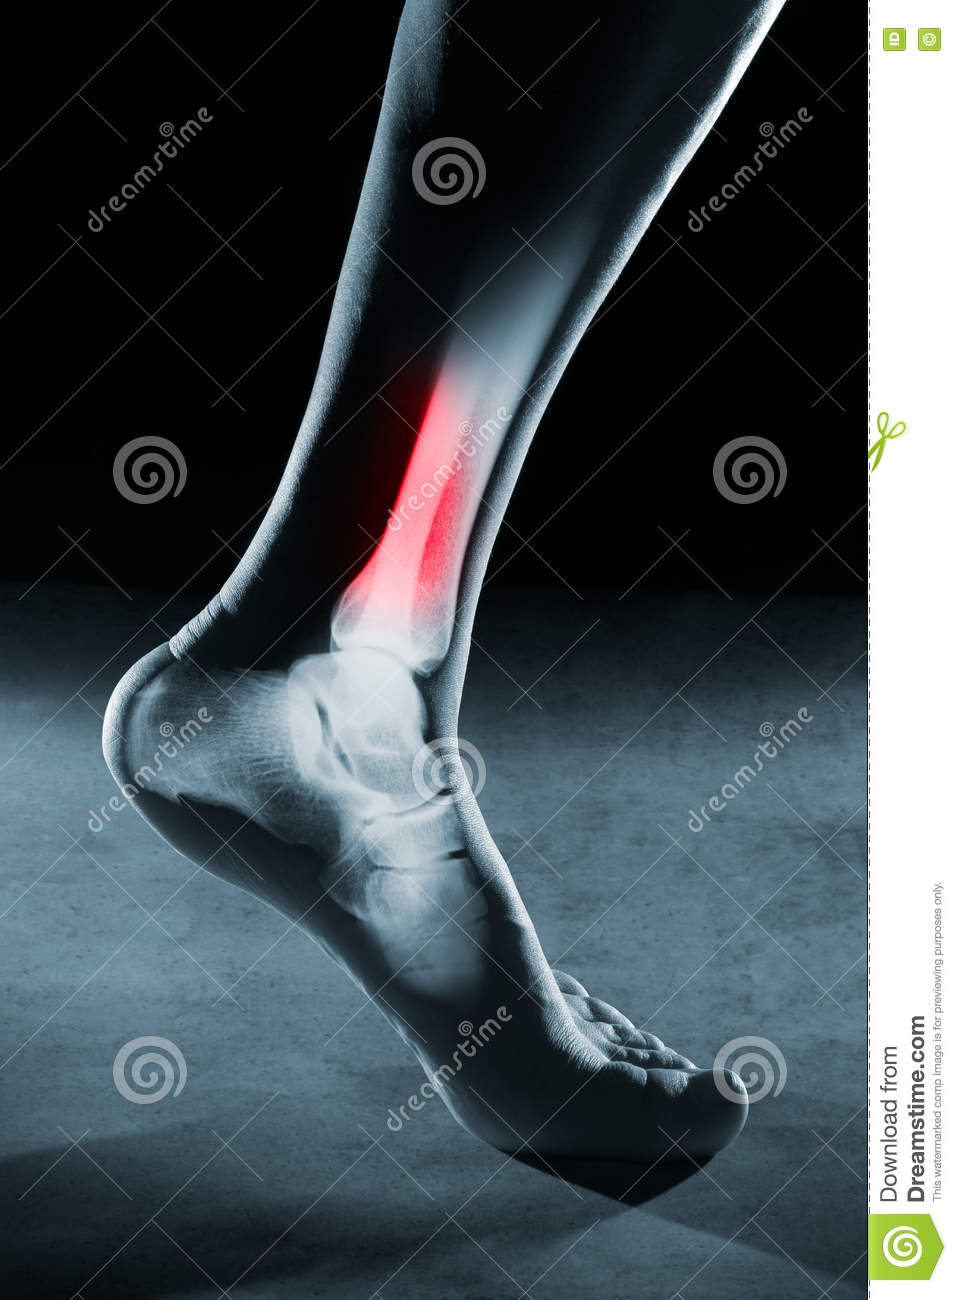 Human foot ankle and leg in x-ray